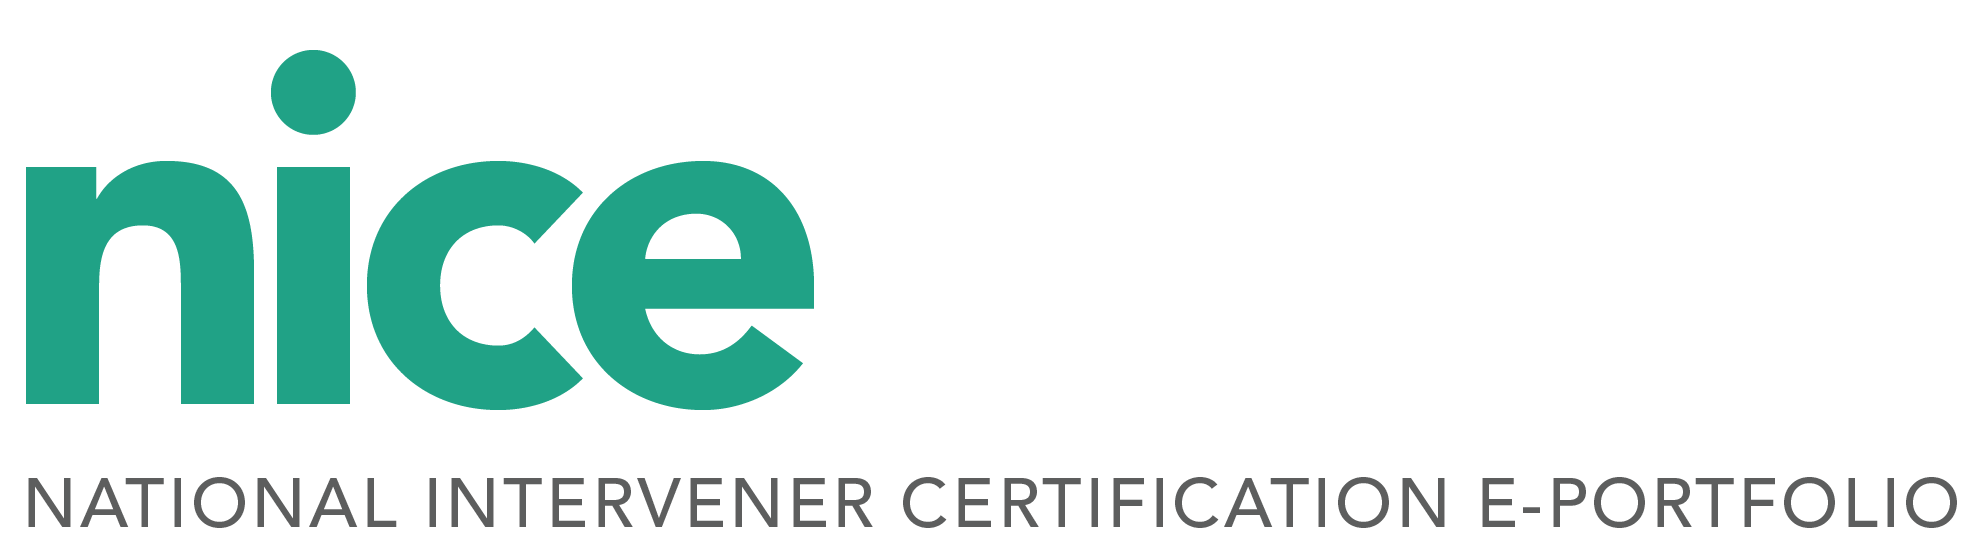 Para center para center at the university of colorado in denver is pleased to announce the launch of the national intervener certification e portfolio nice 1betcityfo Choice Image